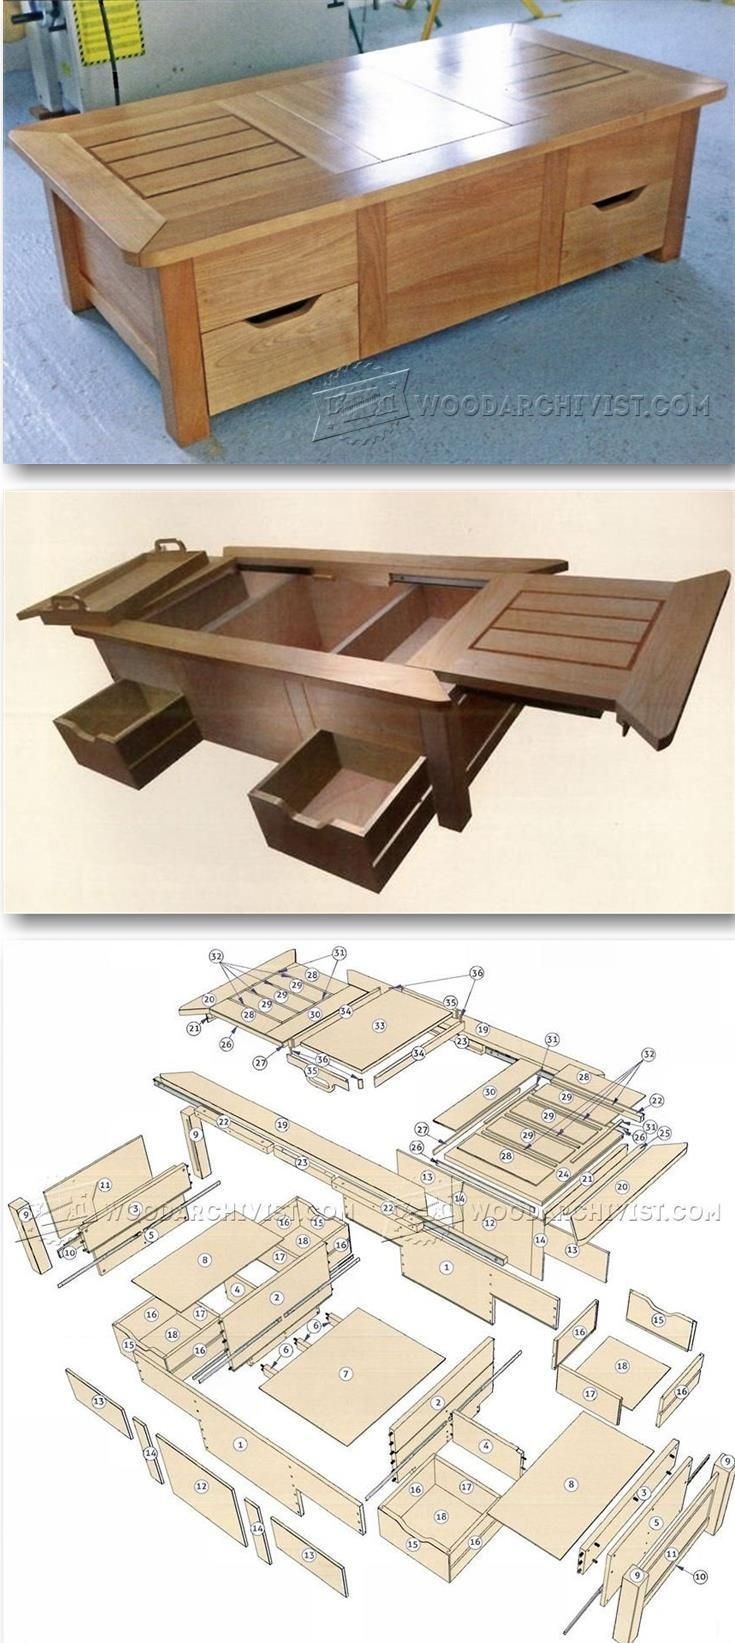 Beautiful And Easy To Make This Will Pay For Itself Http Profitable Woodworking Digimkts Love These Plans I Can Totally Do Myself Sharing Diy